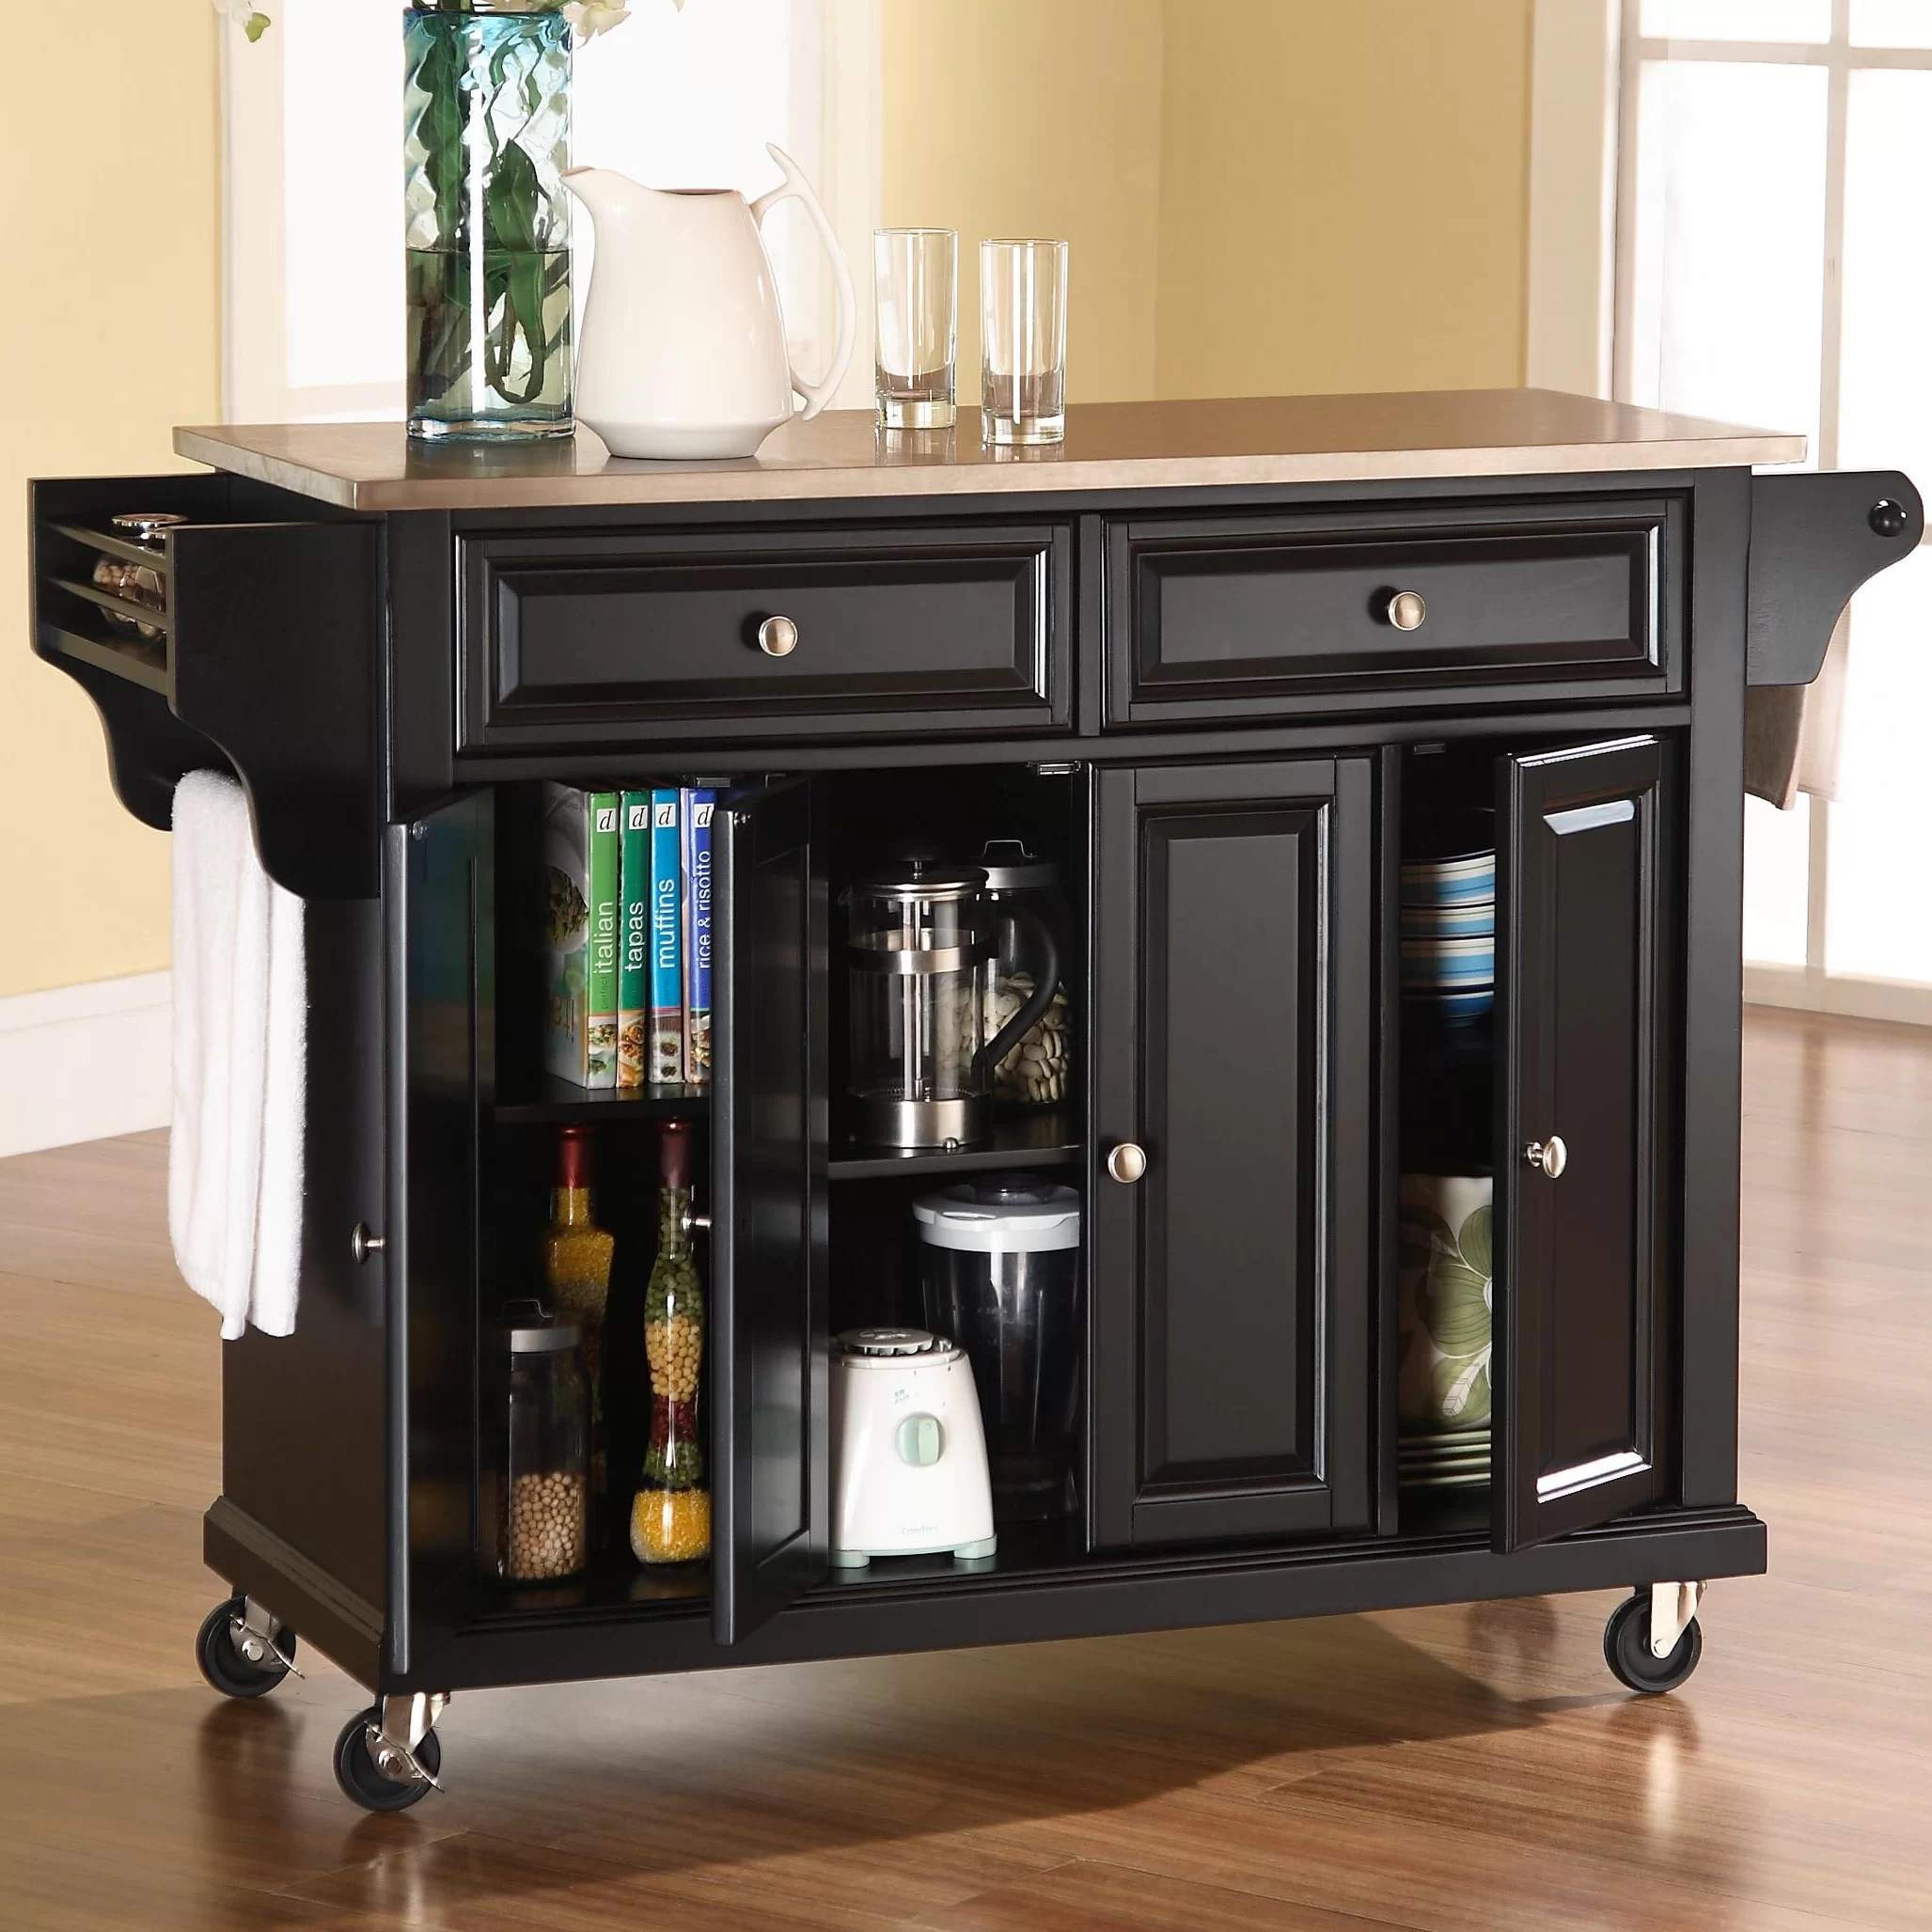 kitchen cart with stainless steel top greenery above cabinets darby home co pottstown island